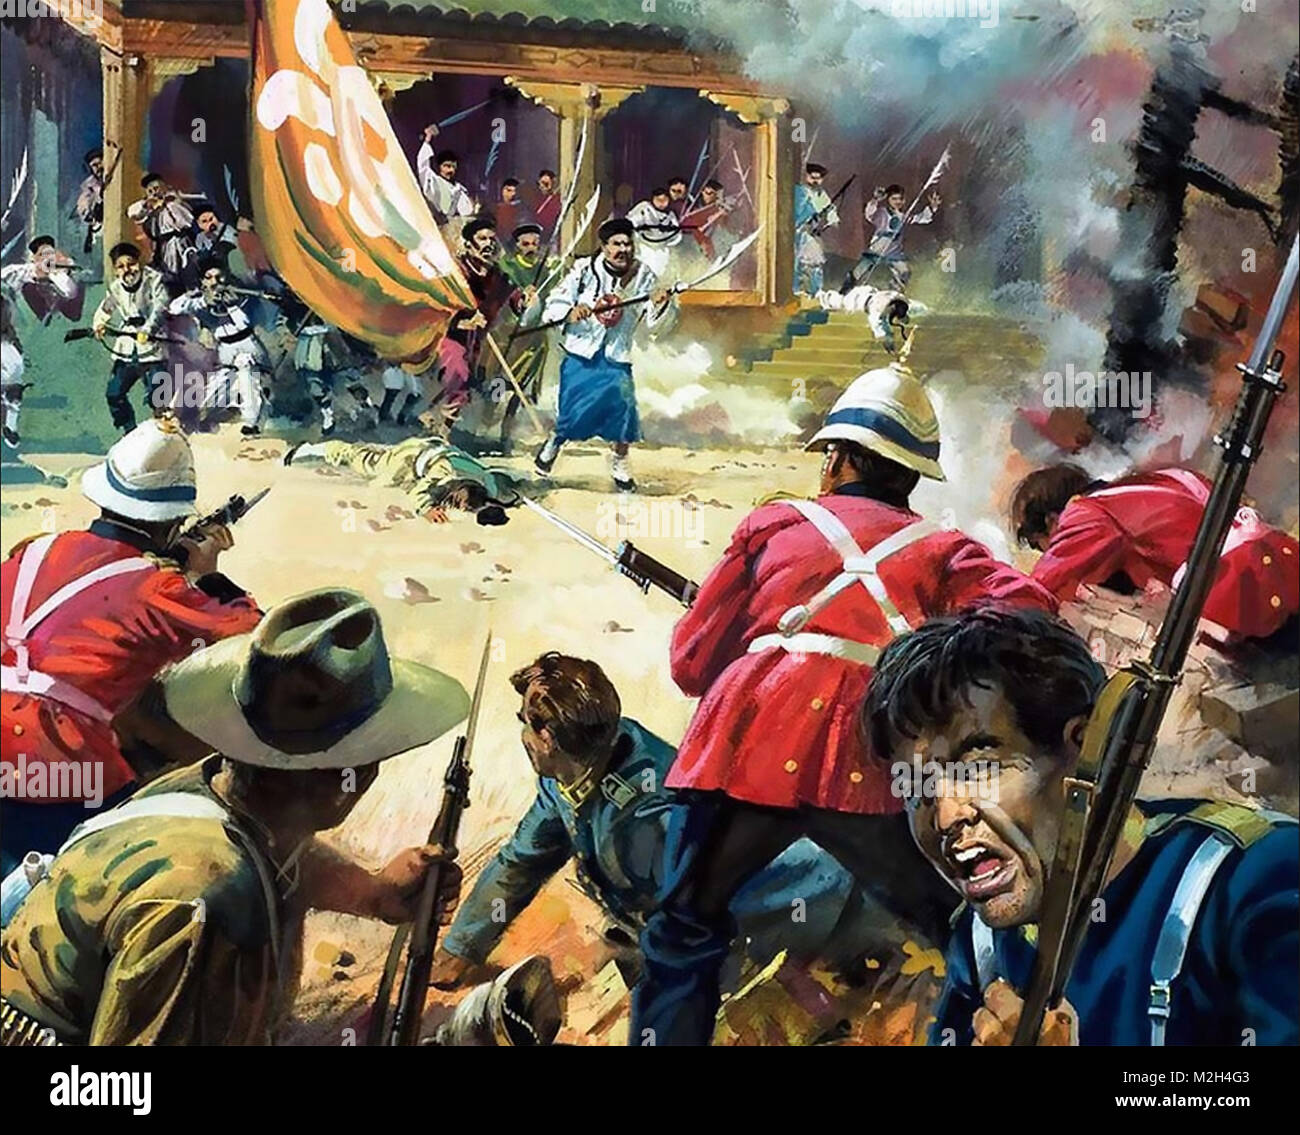 BOXER REBELLION 1899-1901. Defence of the British Embassy. - Stock Image